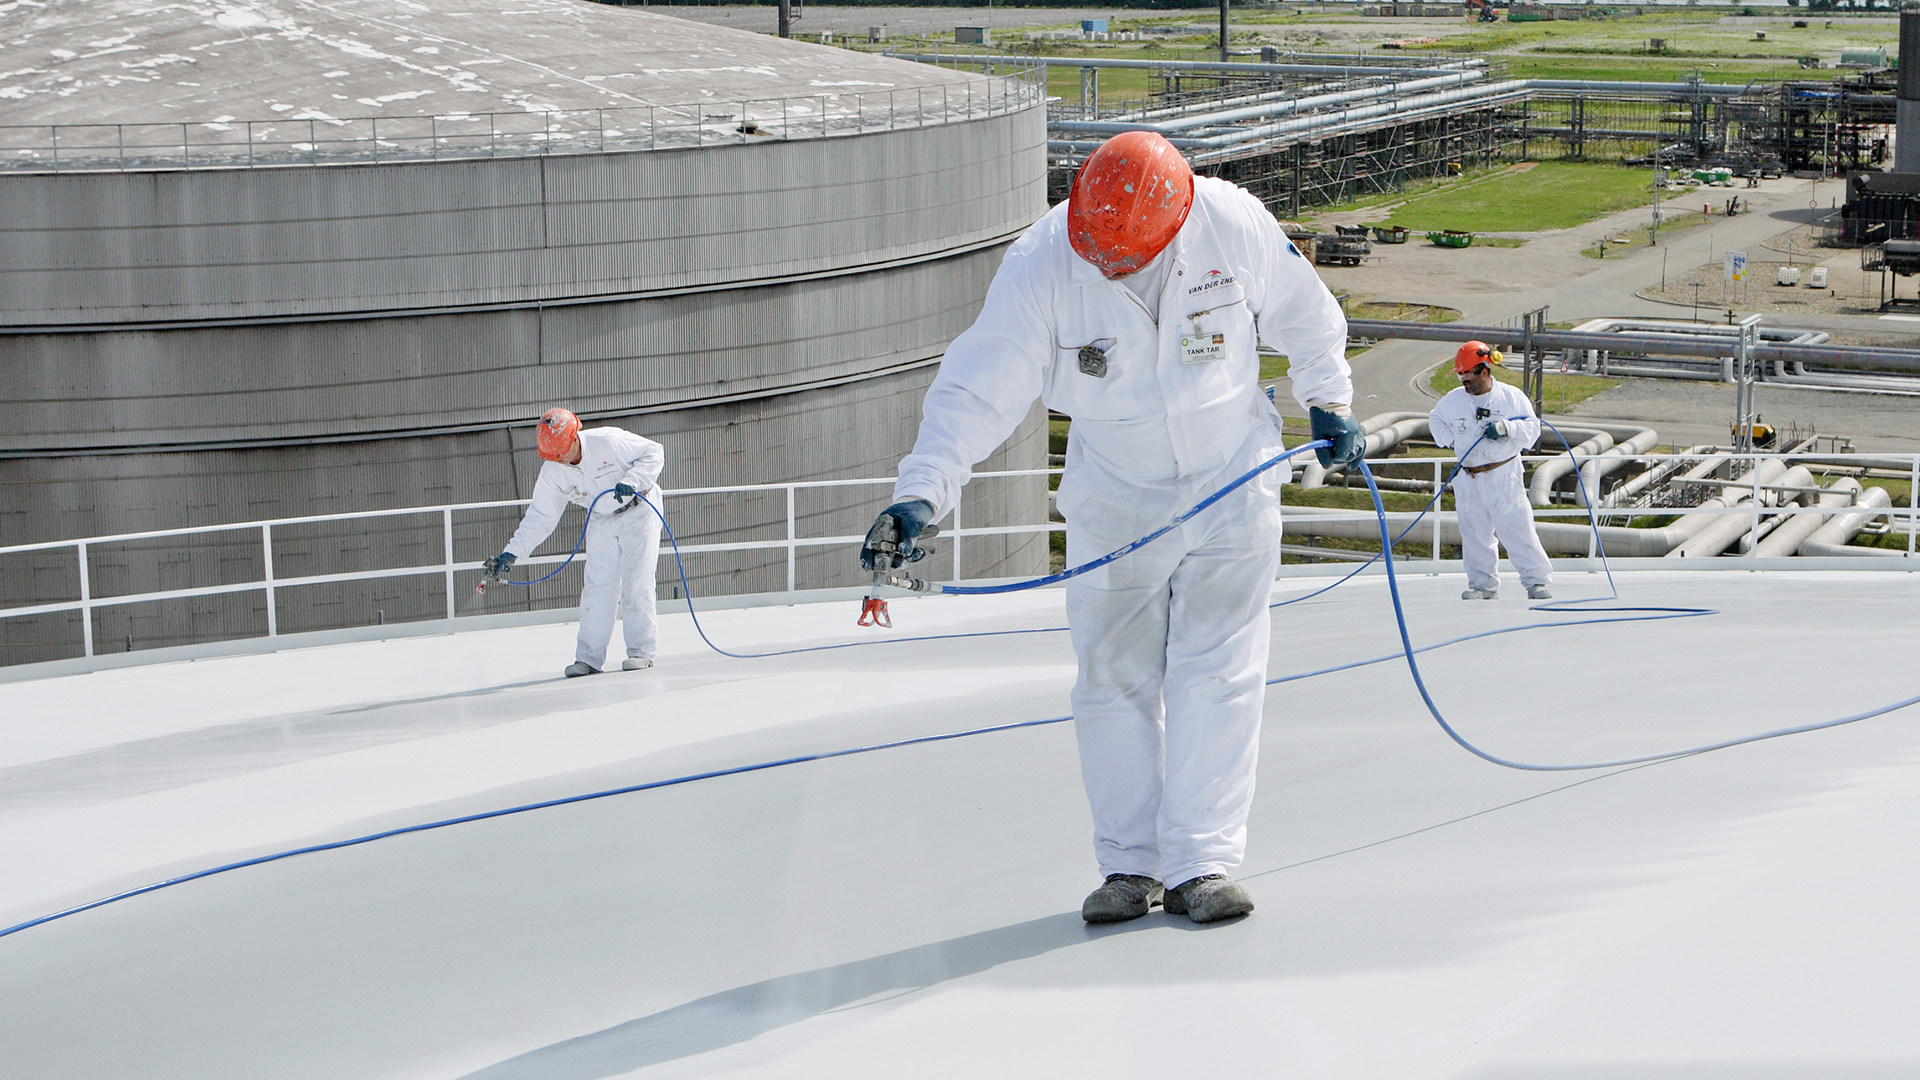 Insulating coatings